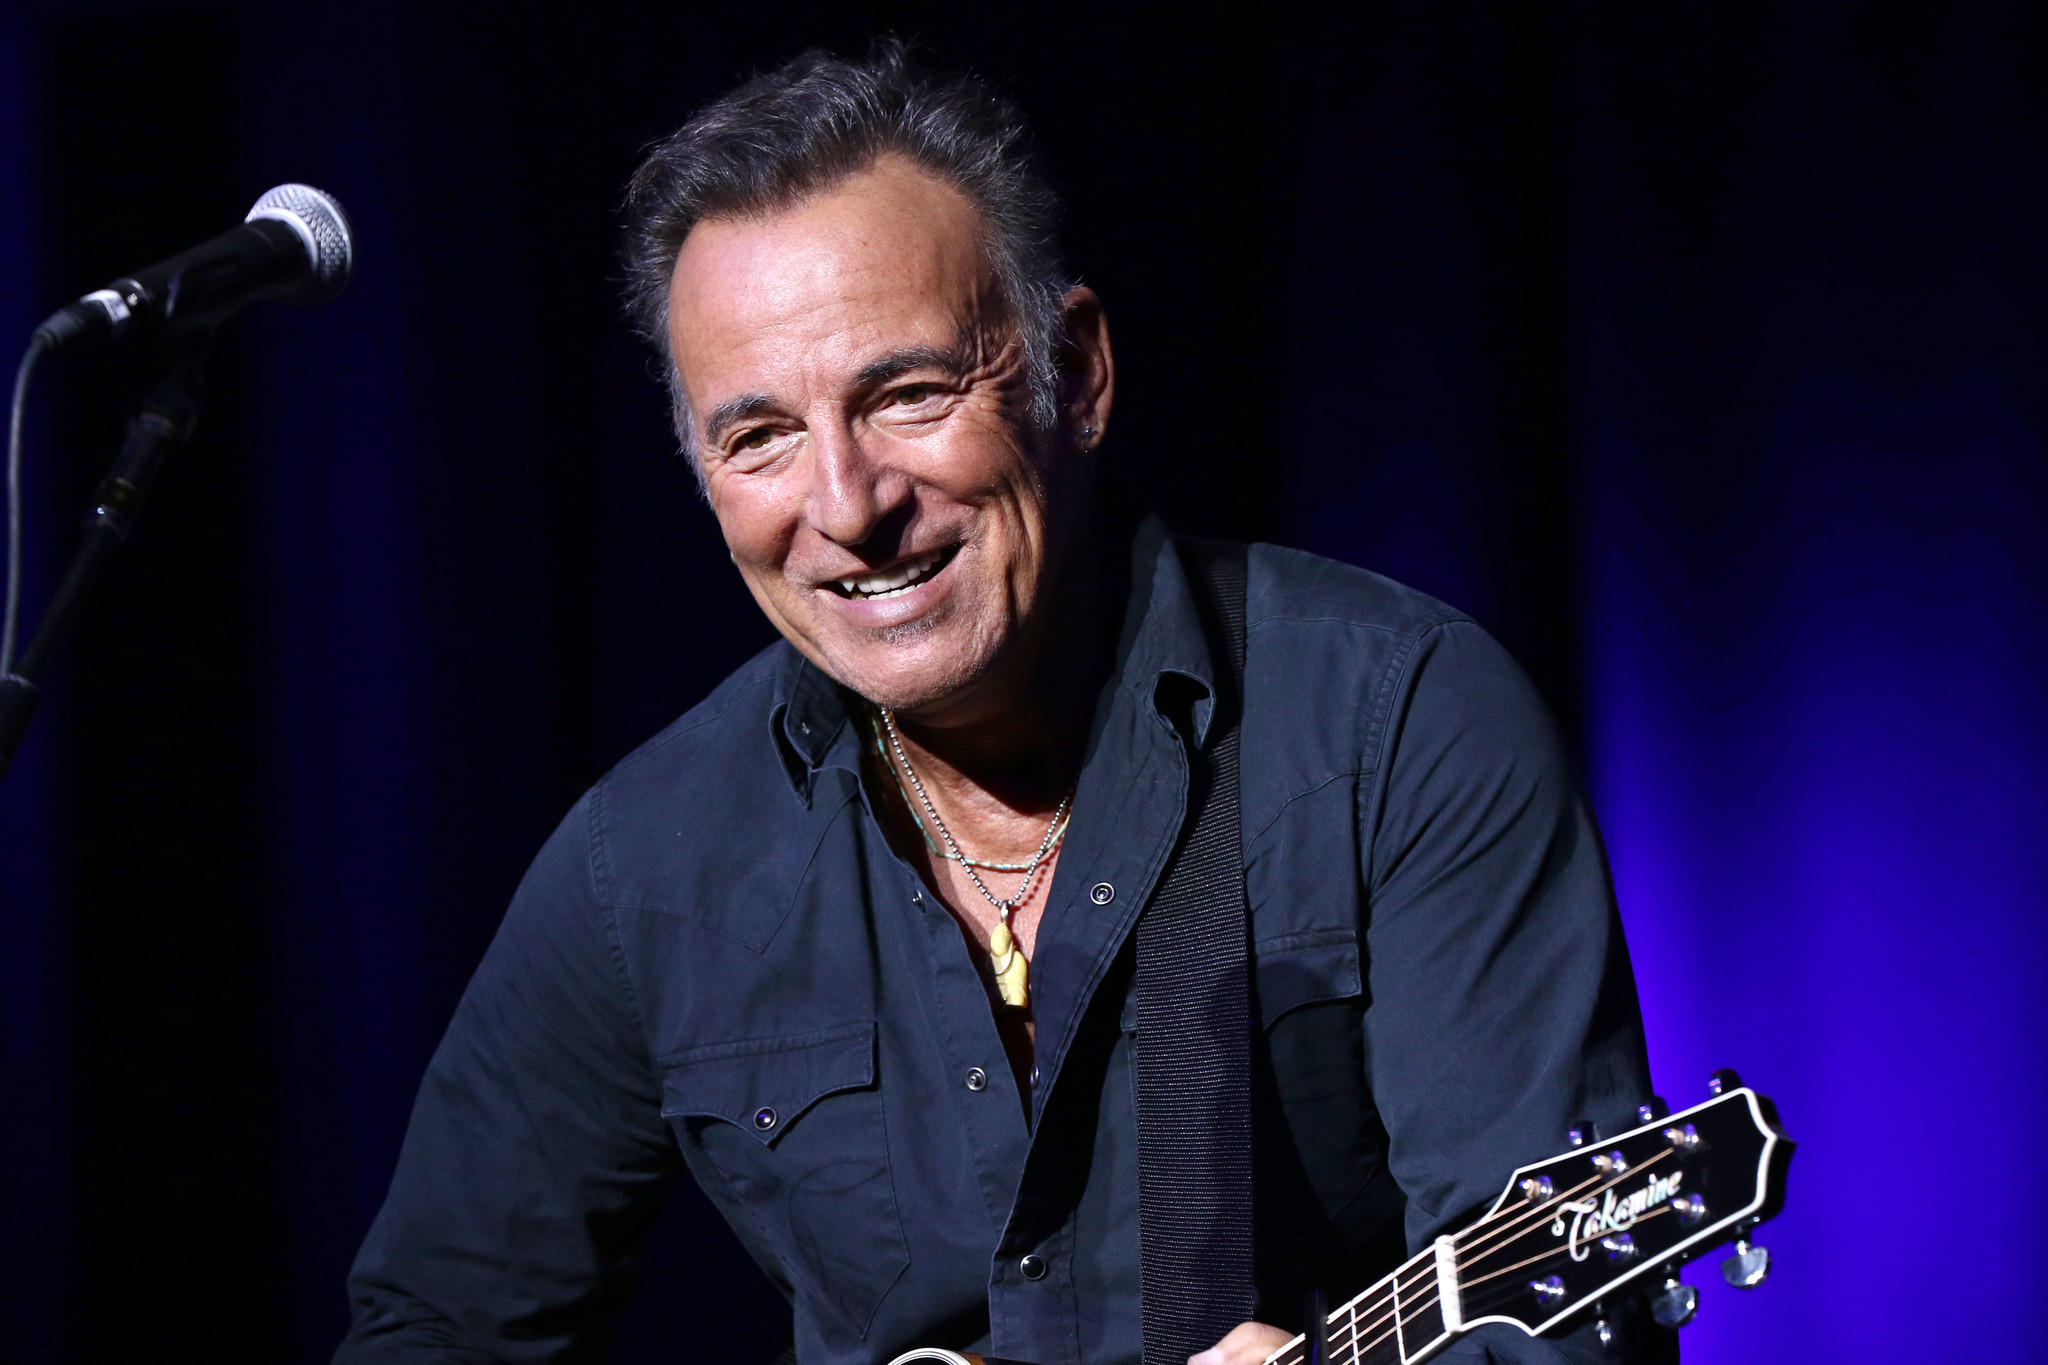 Bruce Springsteen's solo shows on Broadway have been extended through February, just hours after the original run sold out. (Greg Allen / Invision/Associated Press)